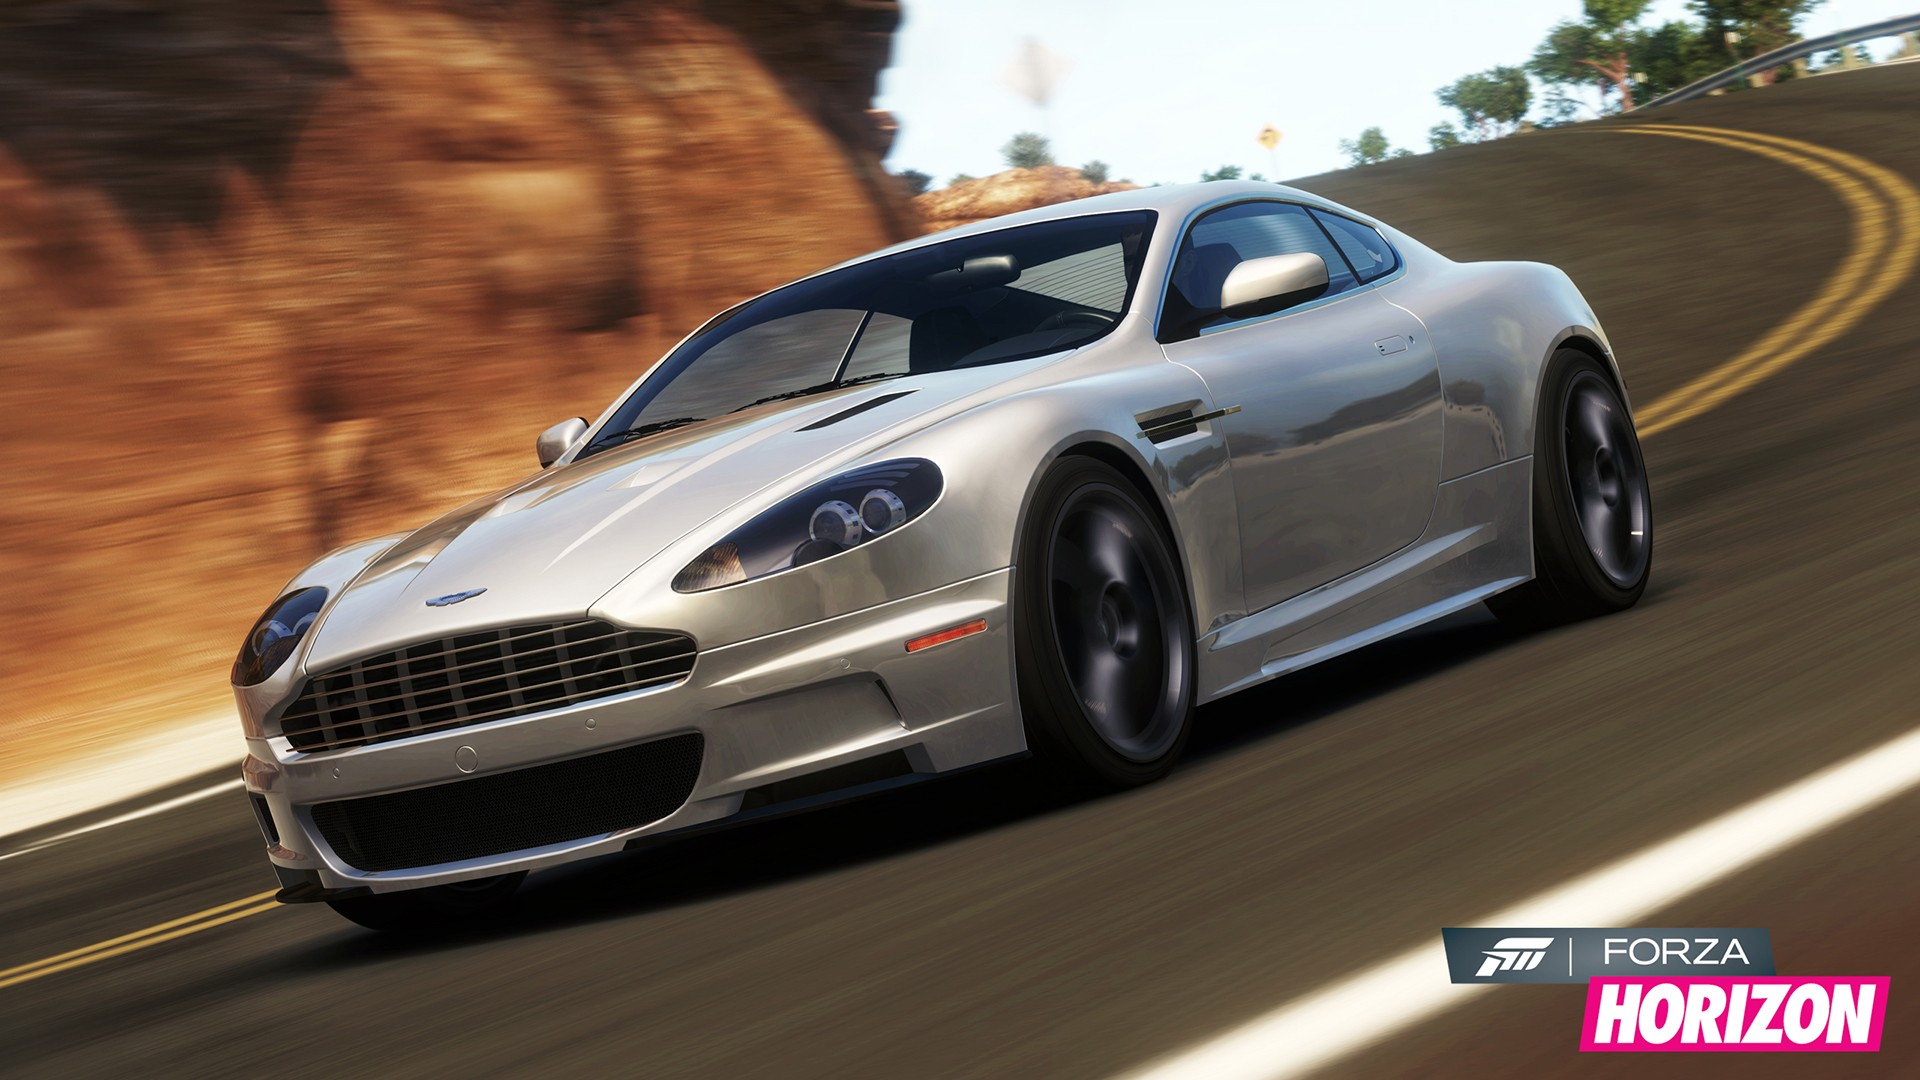 forza horizon wallpapers pictures images. Black Bedroom Furniture Sets. Home Design Ideas